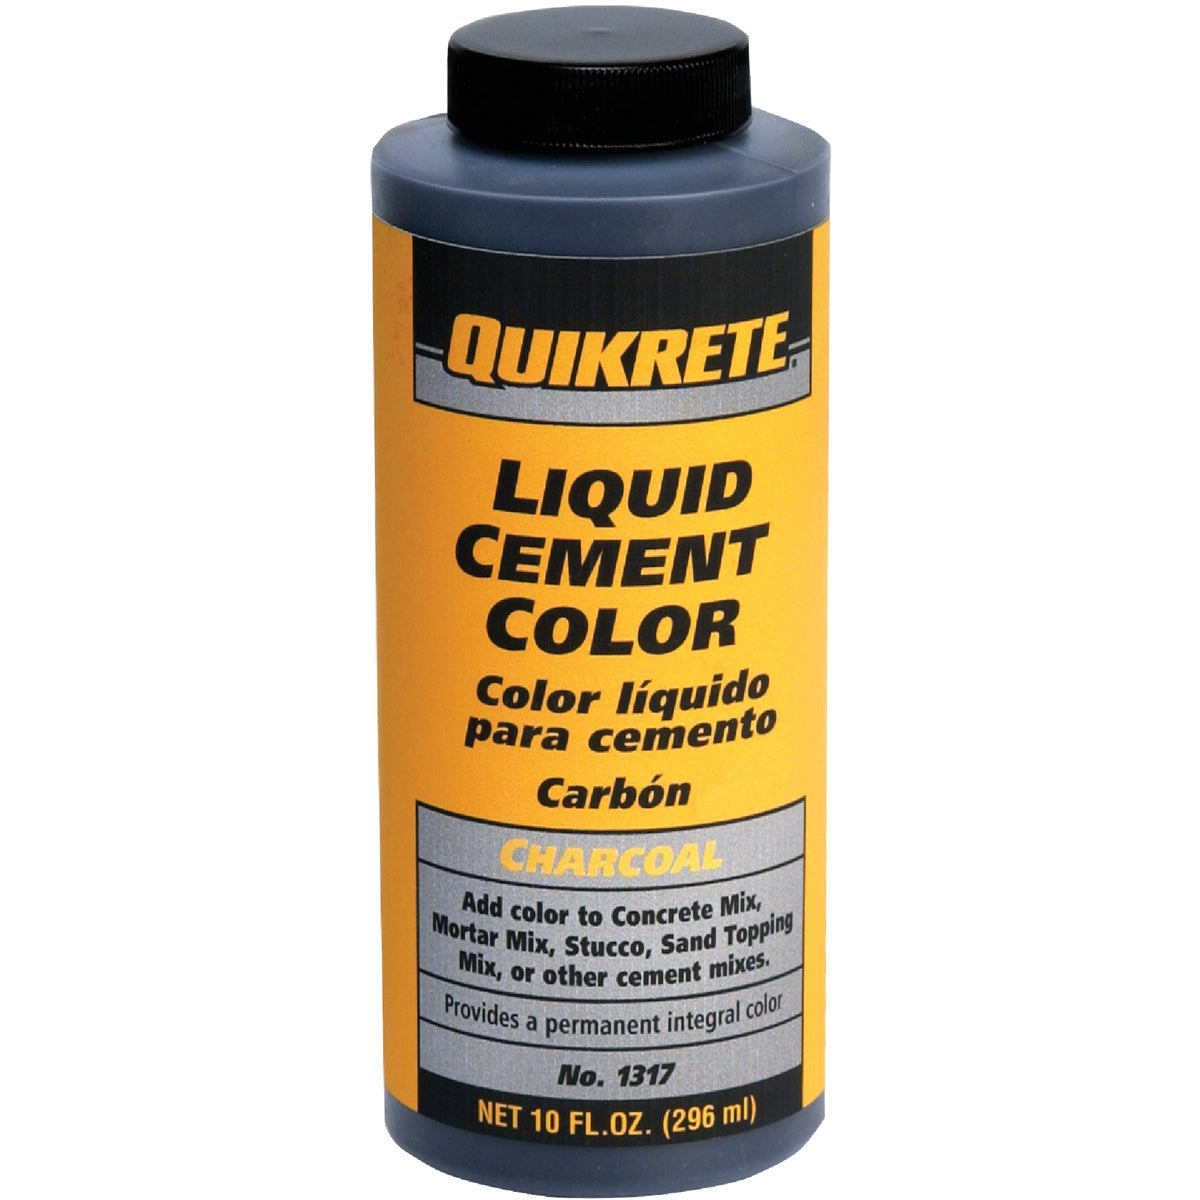 CHAR LIQUID CEMENT COLOR - 1317-00 by Quikrete Co